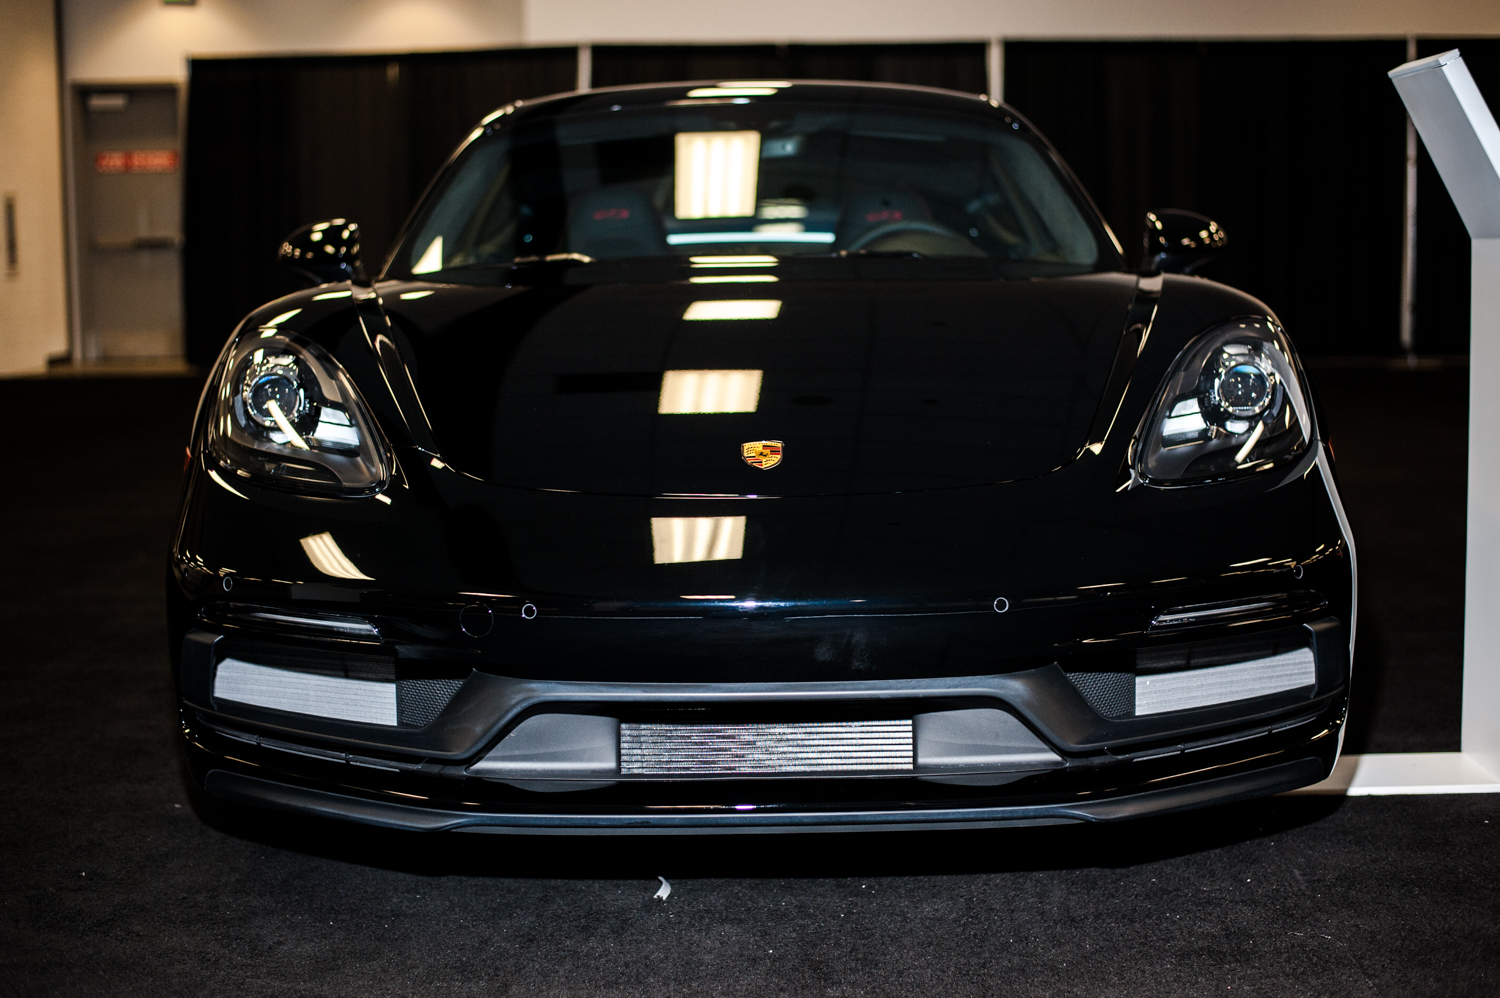 Porsche 718 Cayman GTS - $80,700+. The Seattle International Auto Show{ }showcases all that's new in cars, trucks, exotics, super cars, electrics and all the latest models from the world's automobile makers. We scoured the place for the most expensive vehicles we could find - and aye caramba - some of these are literally the cars of our dreams. The Auto Show runs Nov. 9-12, 2018 at CenturyLink Field Event Center. (Image: Elizabeth Crook / Seattle Refined)